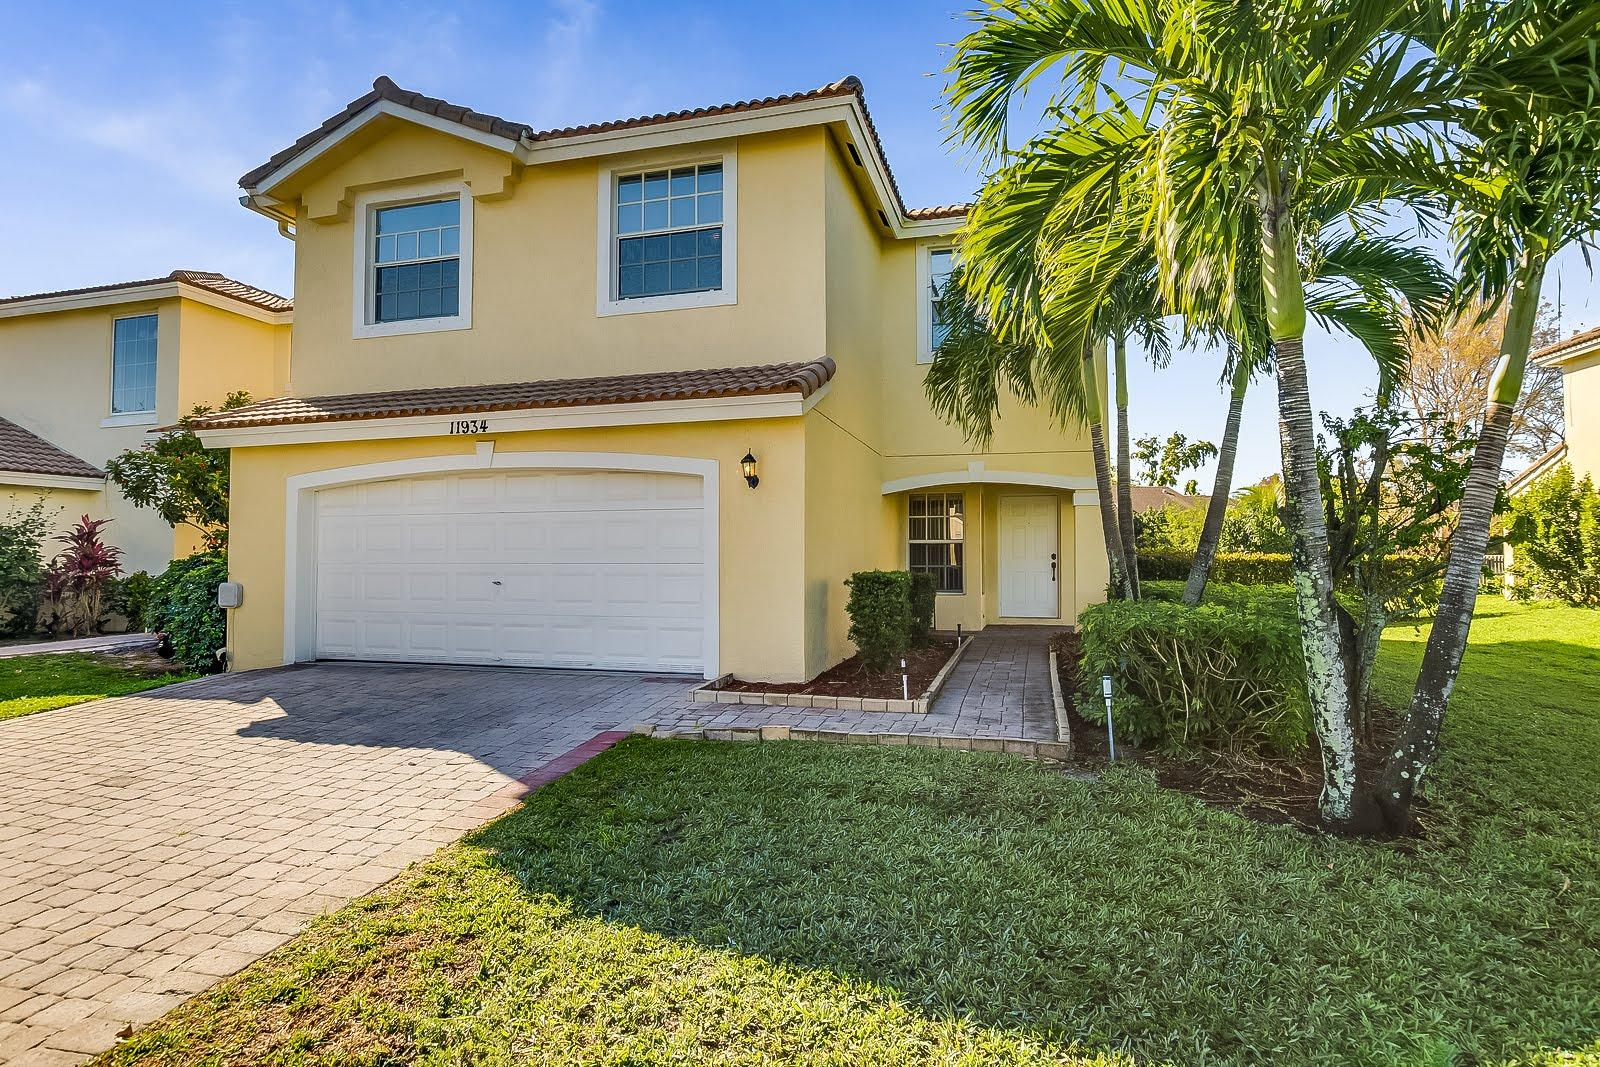 Home for sale in Park Place Wellington Florida